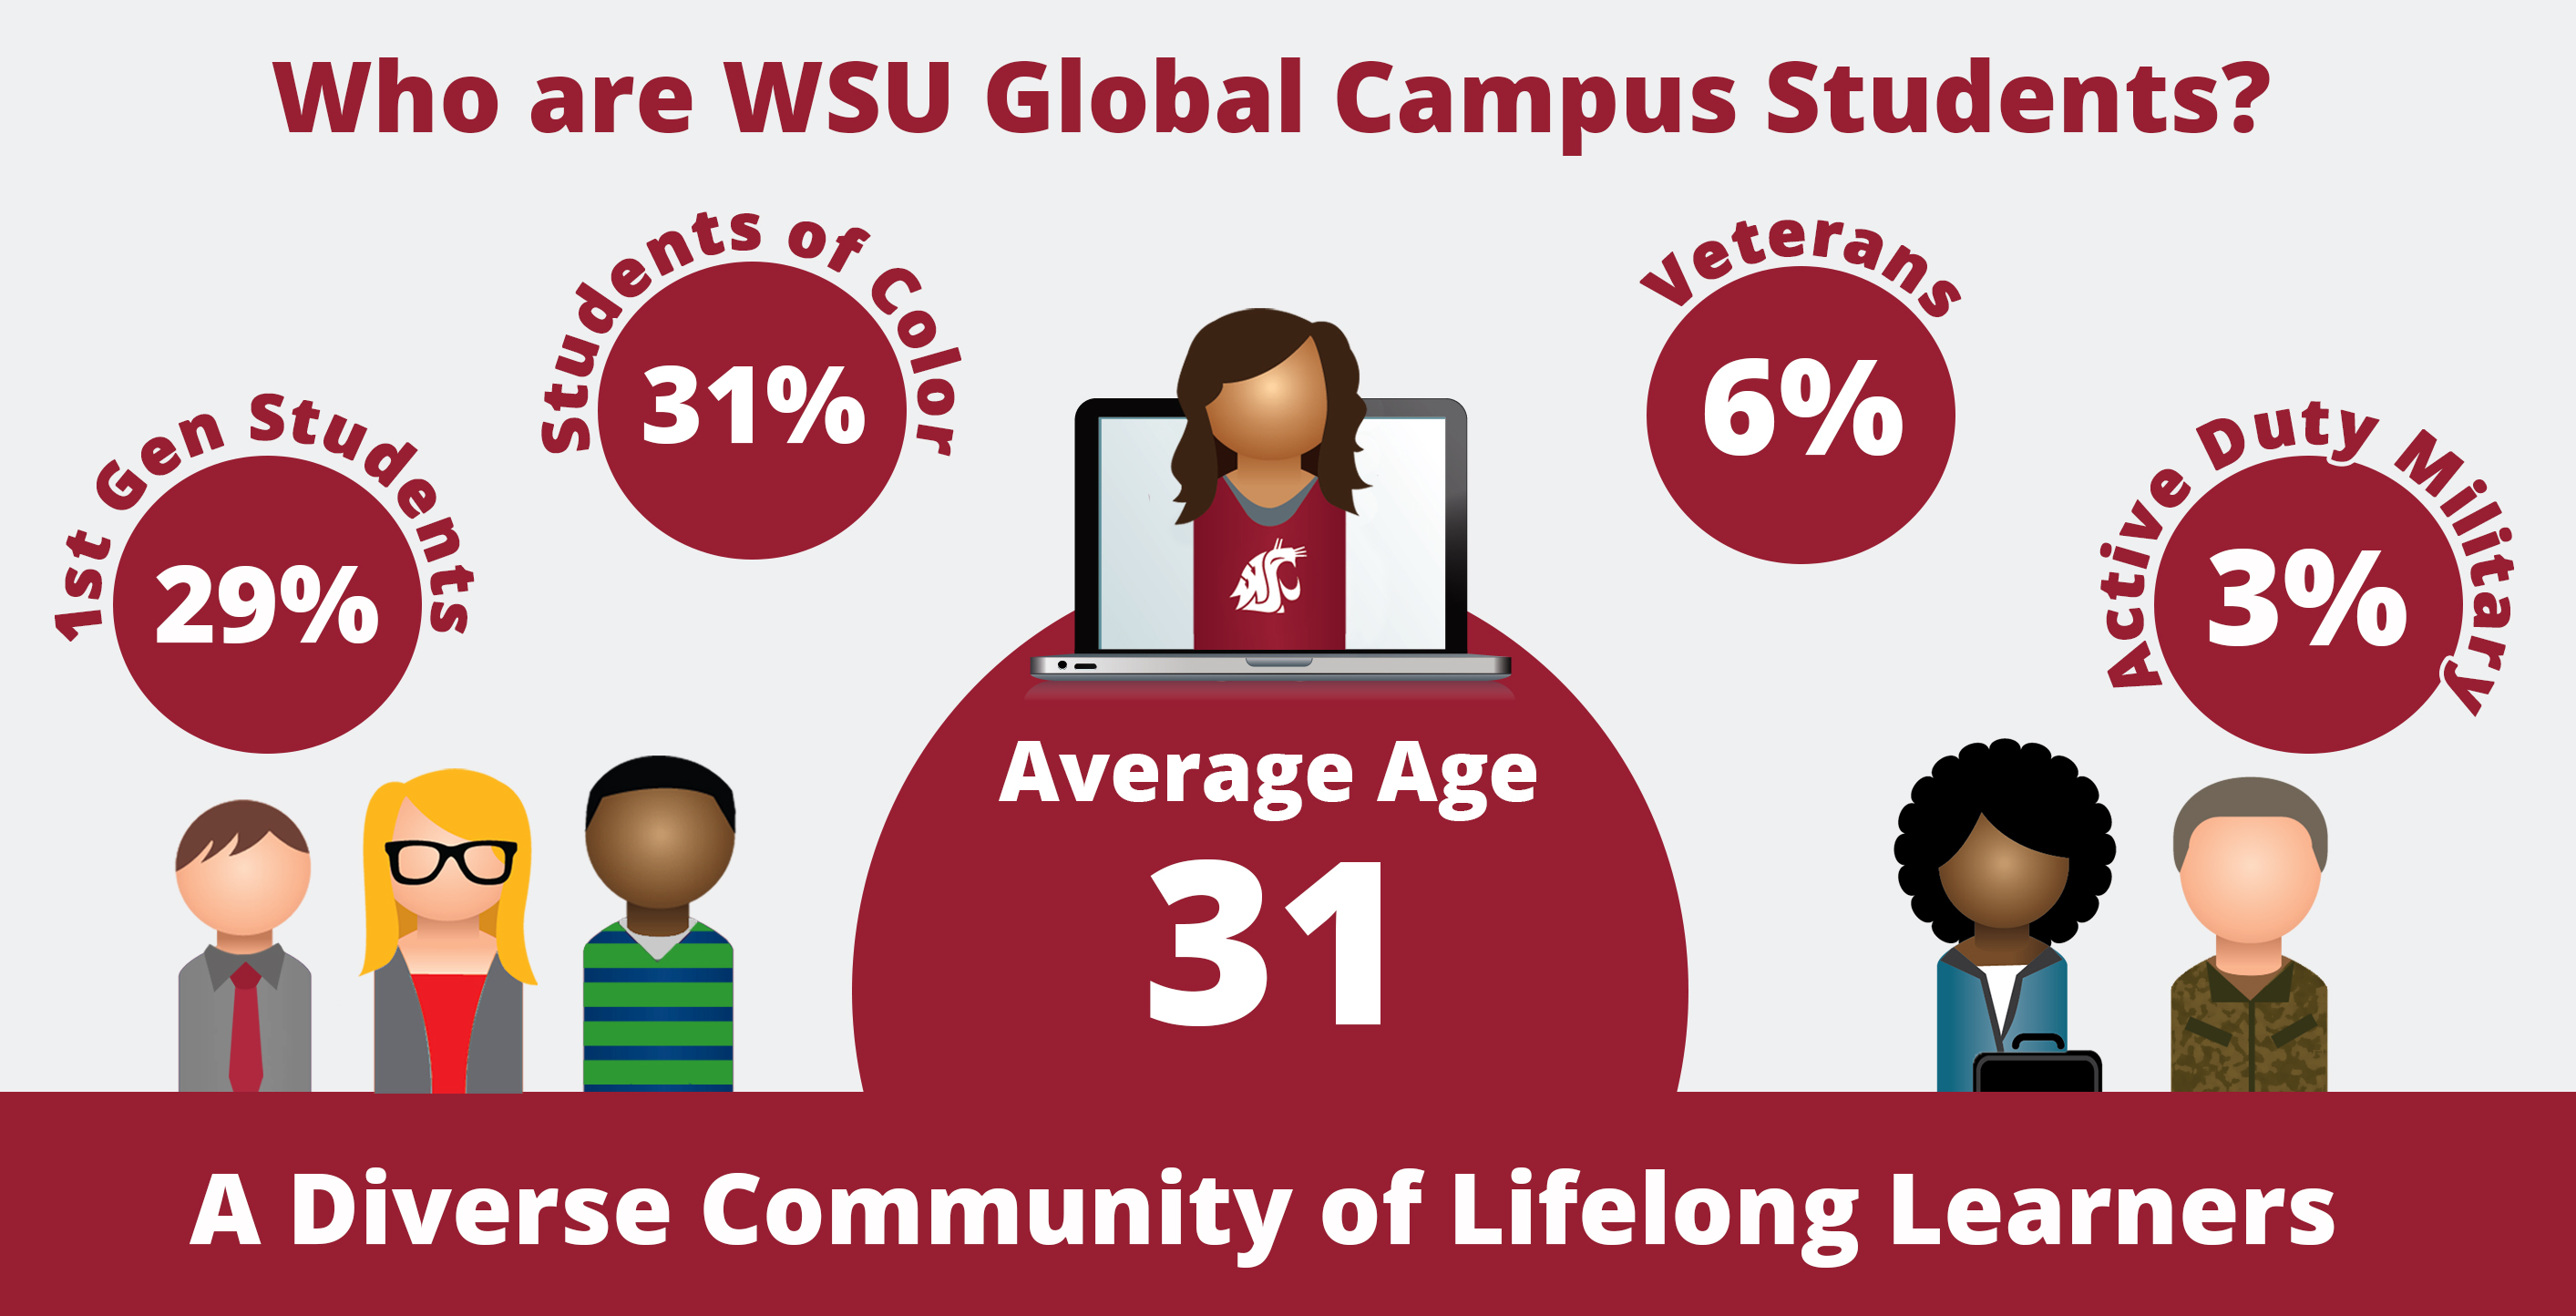 WSU Global Campus students are diverse. The average student's age is 31 and 29% are 1st generation students, 31% are students of color, 6% are veterans, and 3% are active duty military.